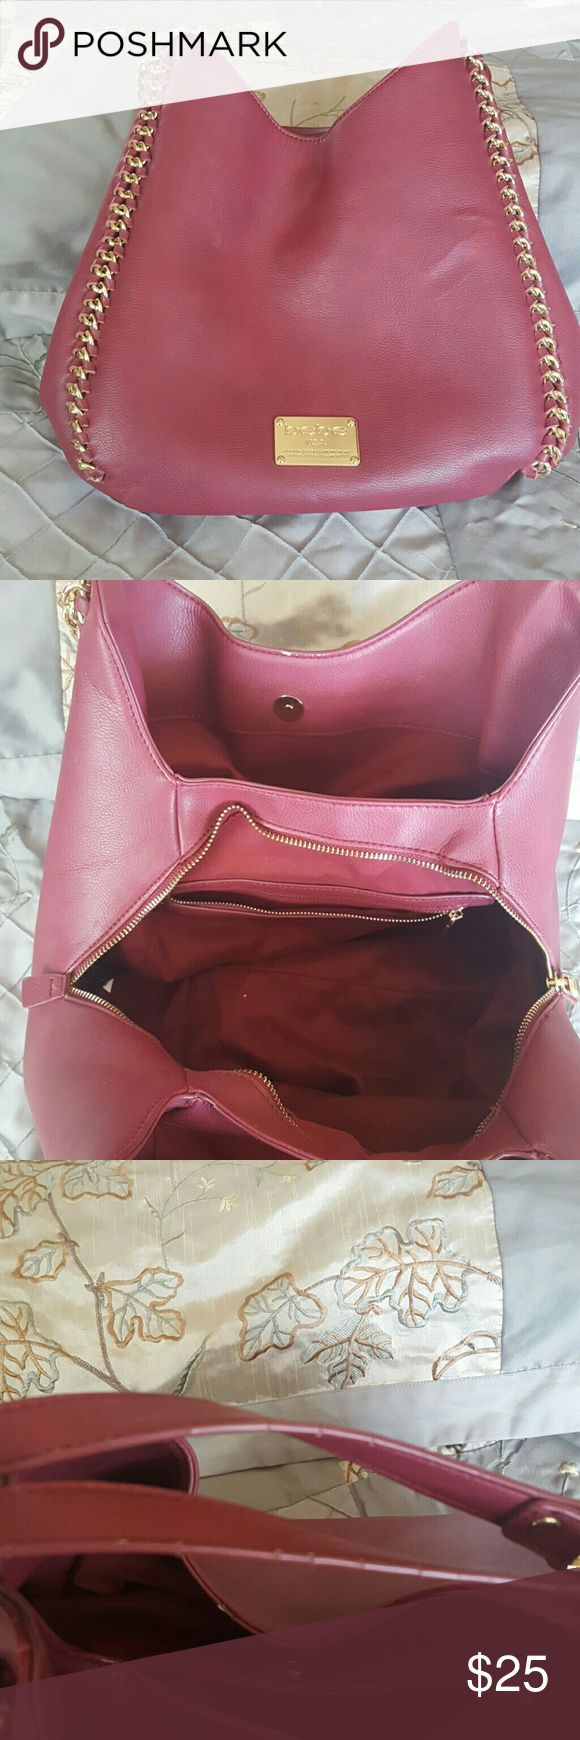 Bebe purse Burgundy Bebe purse.  Great purse.   Has some cracks on straps and inside one of the lips of the bag.   Clean.   Only used for about 1 month bebe Bags Shoulder Bags